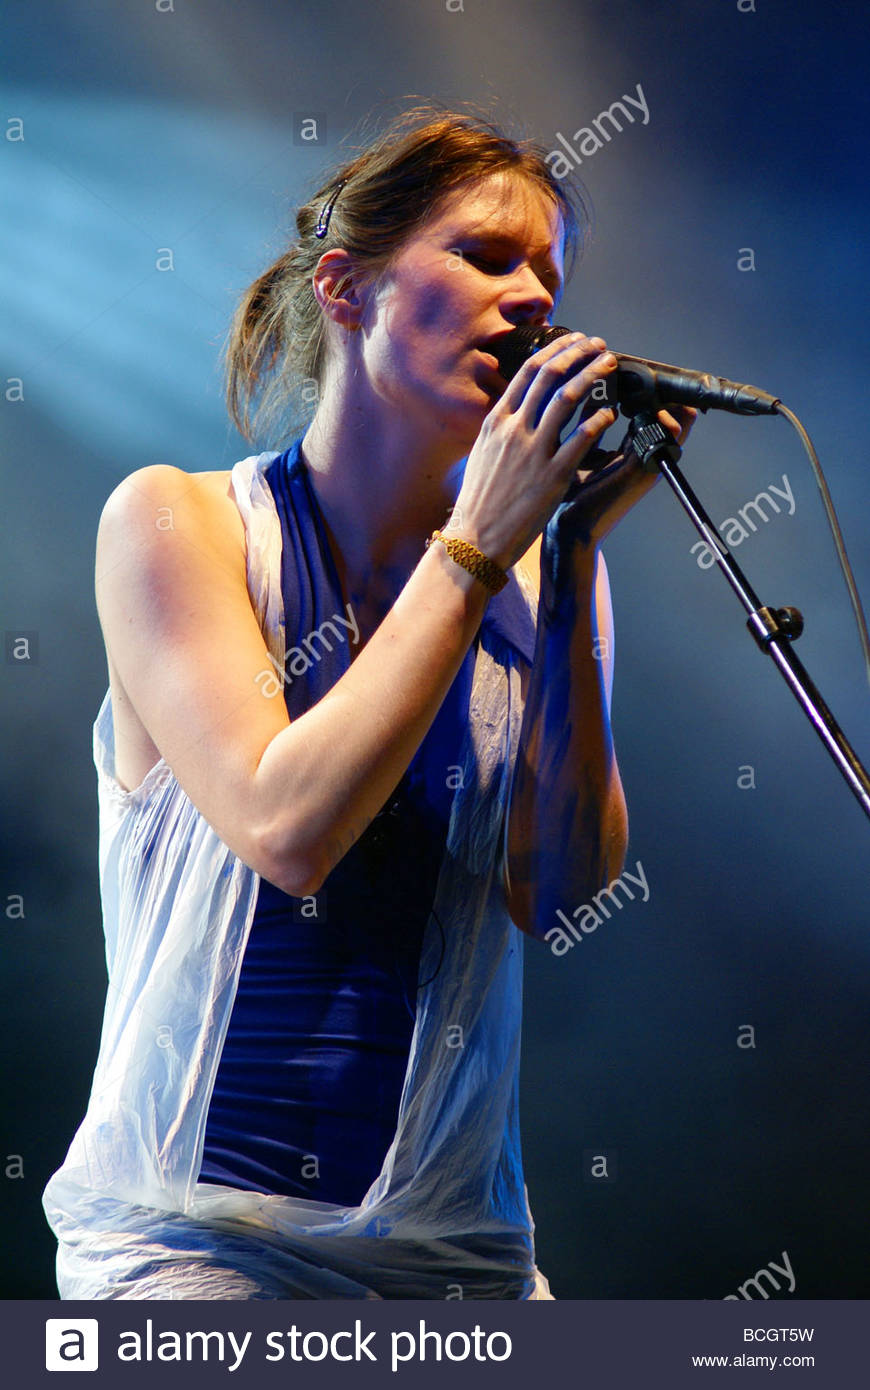 French singer Camille performing live - Stock Image